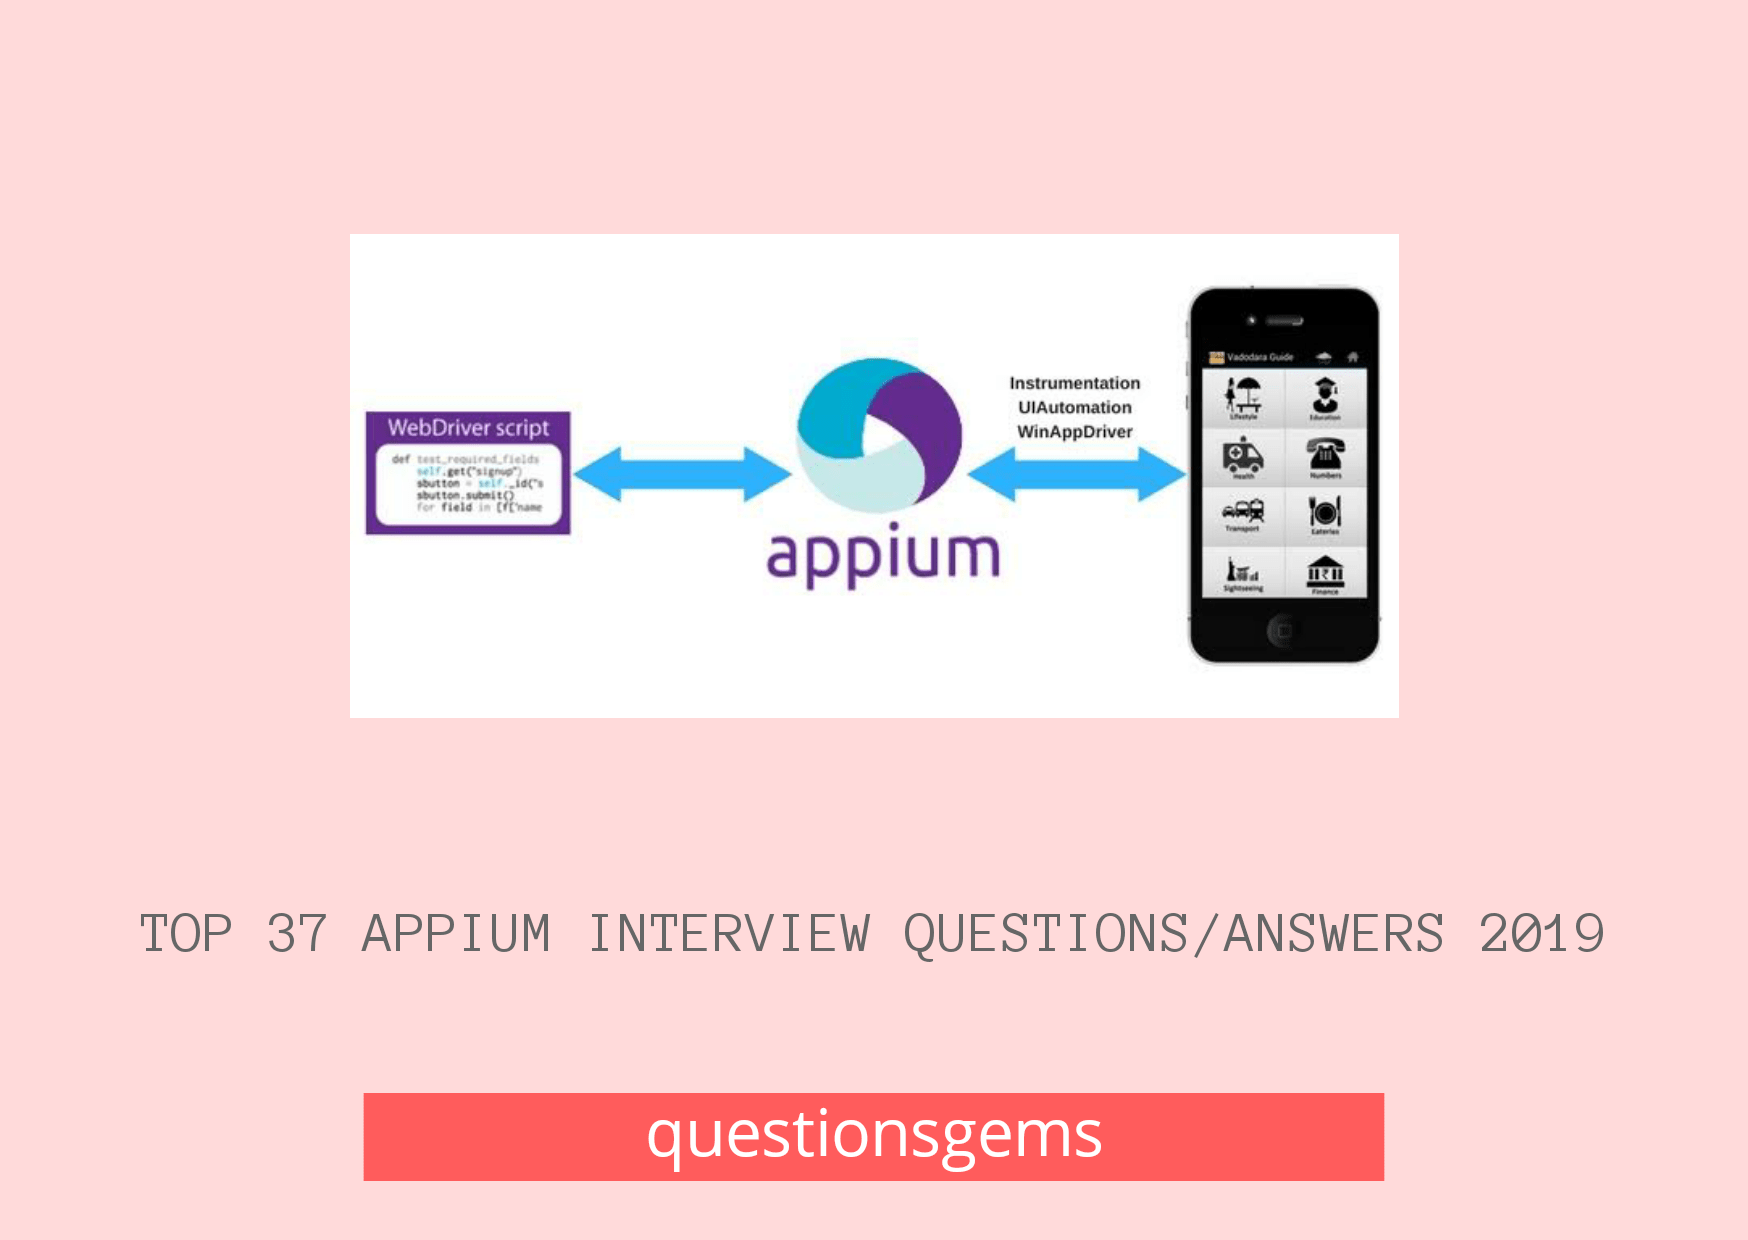 Appium Interview Questions And Answers 2019